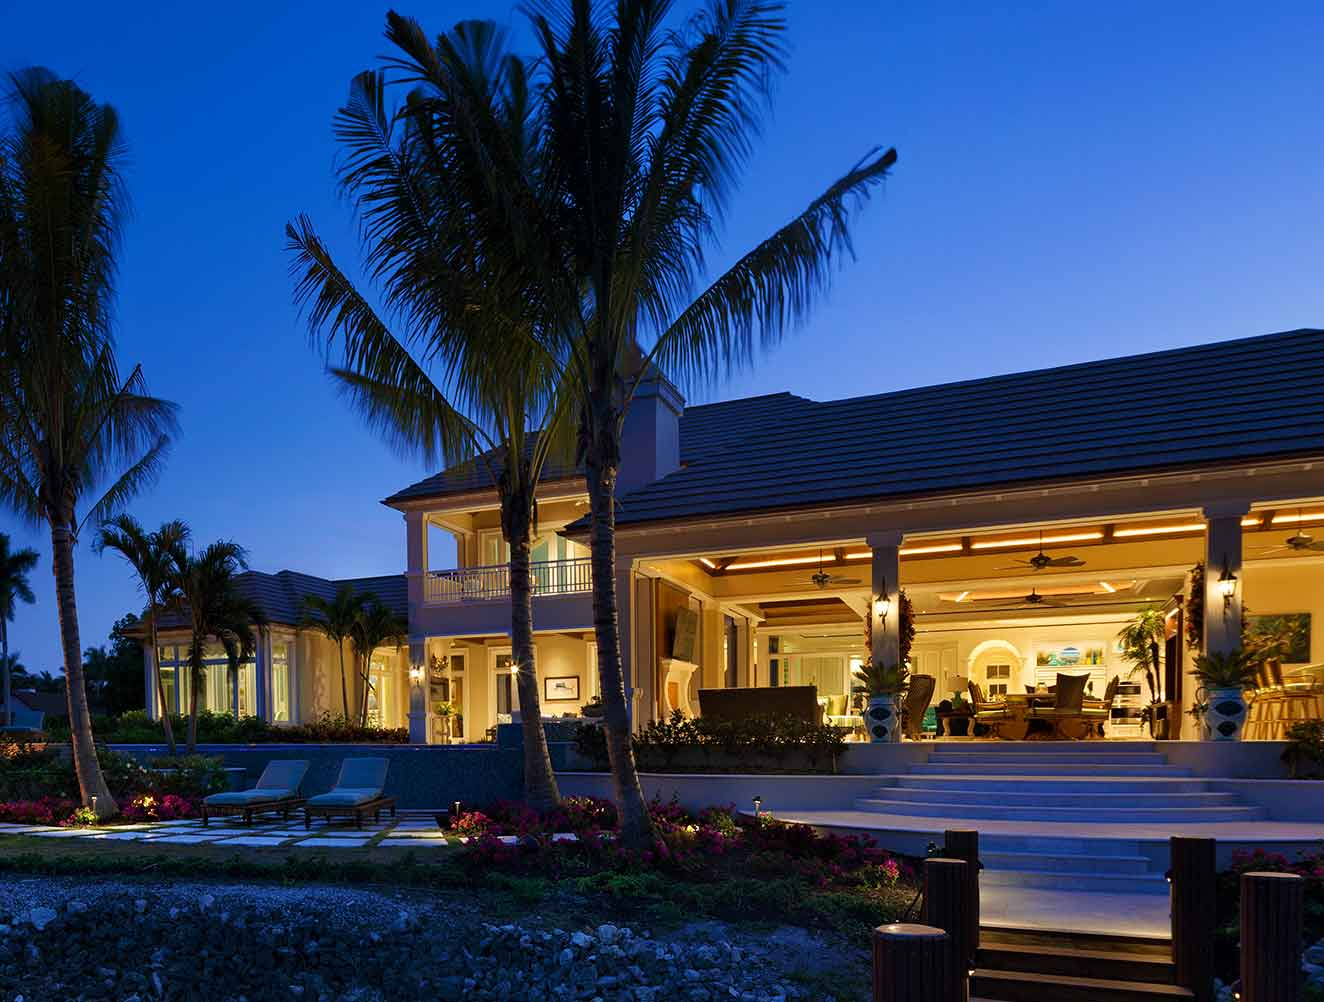 Portfolio of Leisure Spaces in Naples, Florida Luxury Homes. Leisure Outdoor Covered Dining space. Designed by Kukk Architecture & Design Naples.